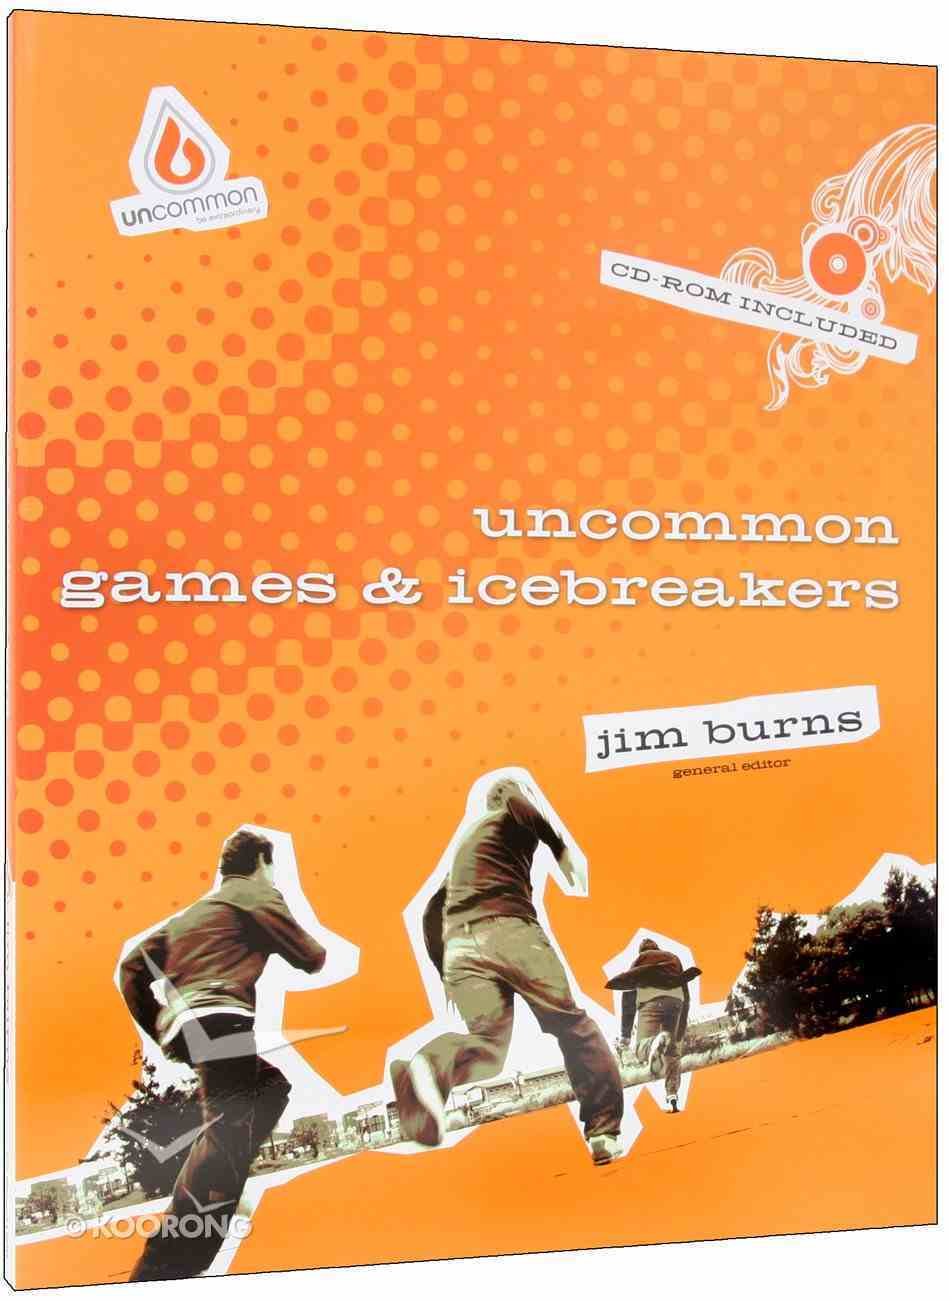 Uncommon Games and Icebreakers Paperback